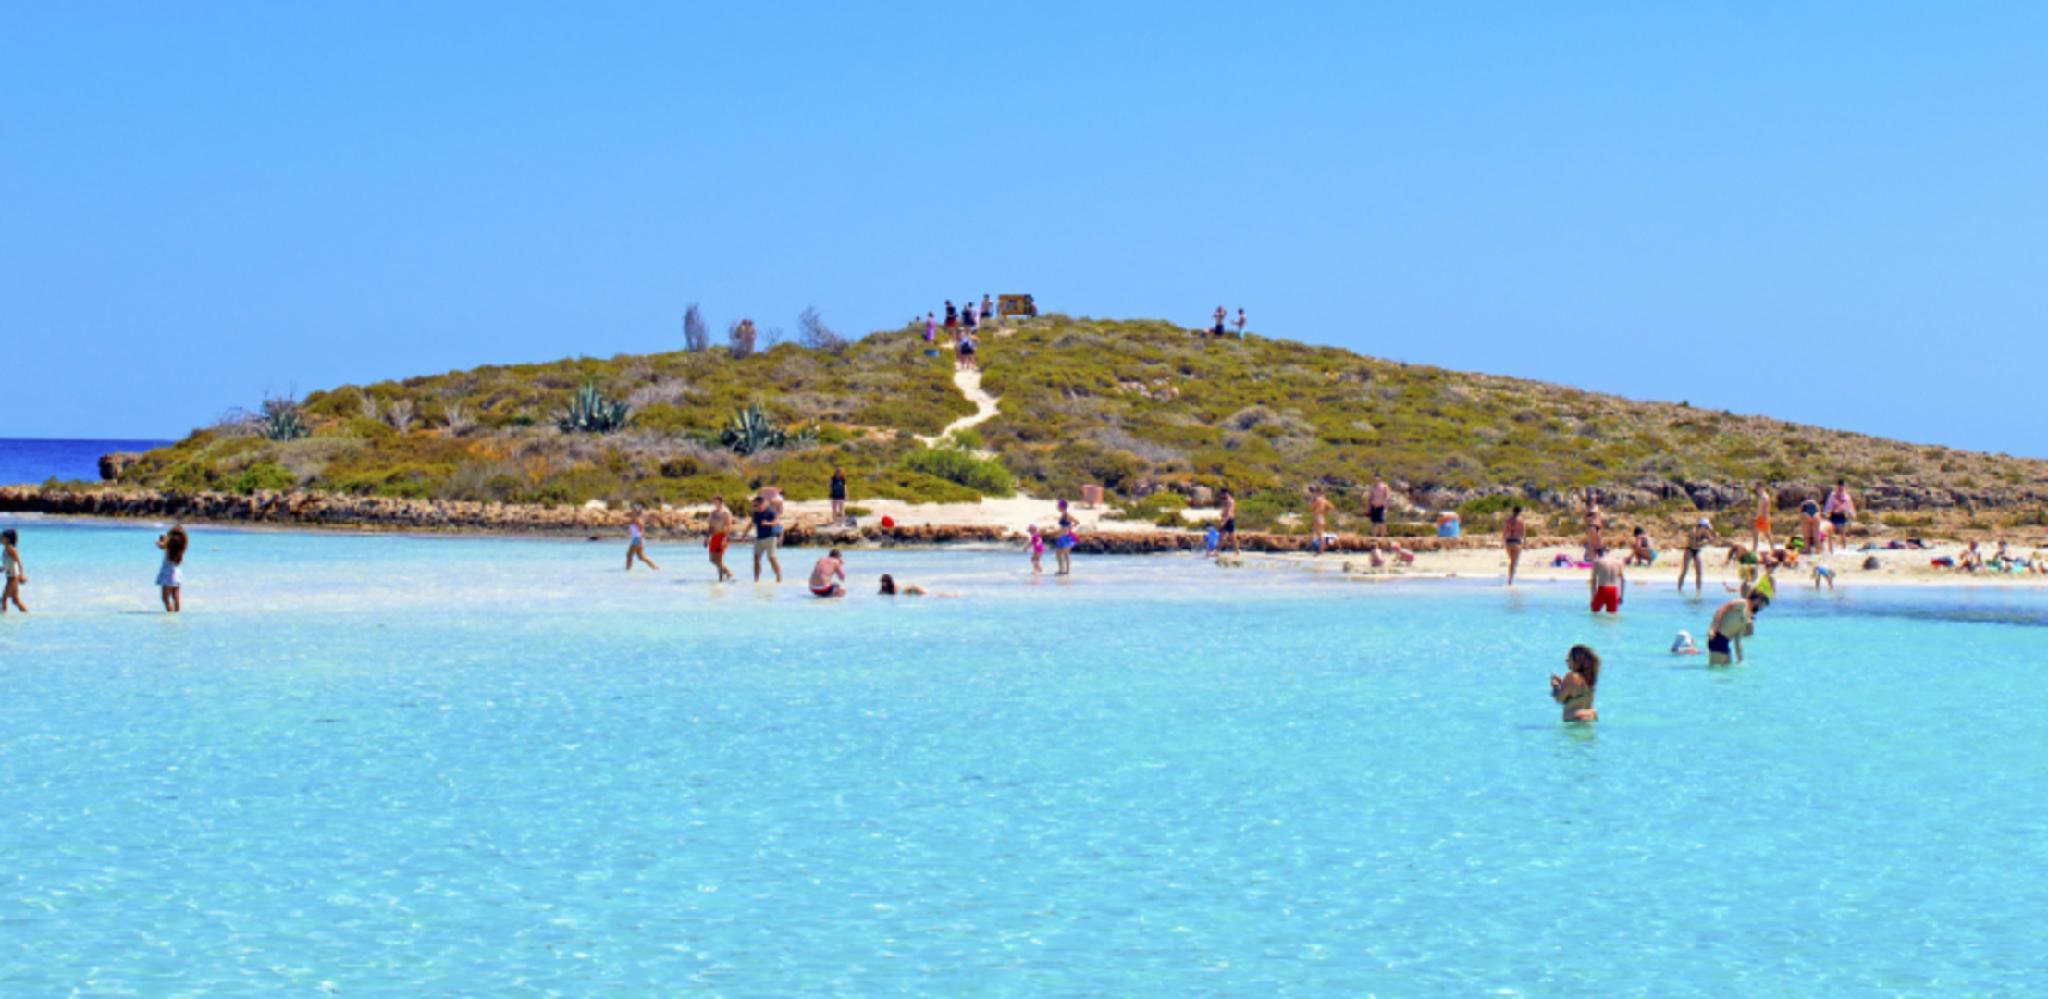 Rent Your Dream Protaras Holiday Villa And Look Forward To Relaxing Beside Your Private Pool